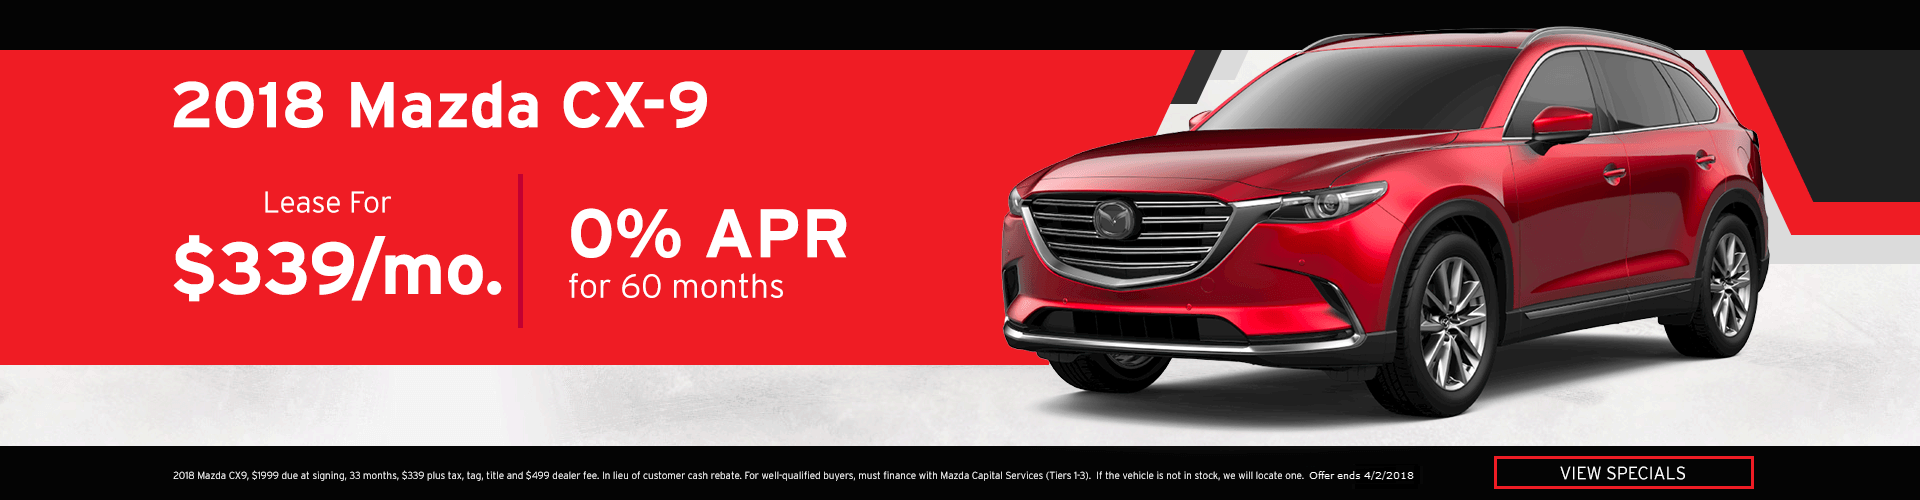 March Mazda CX-9 Special Offer